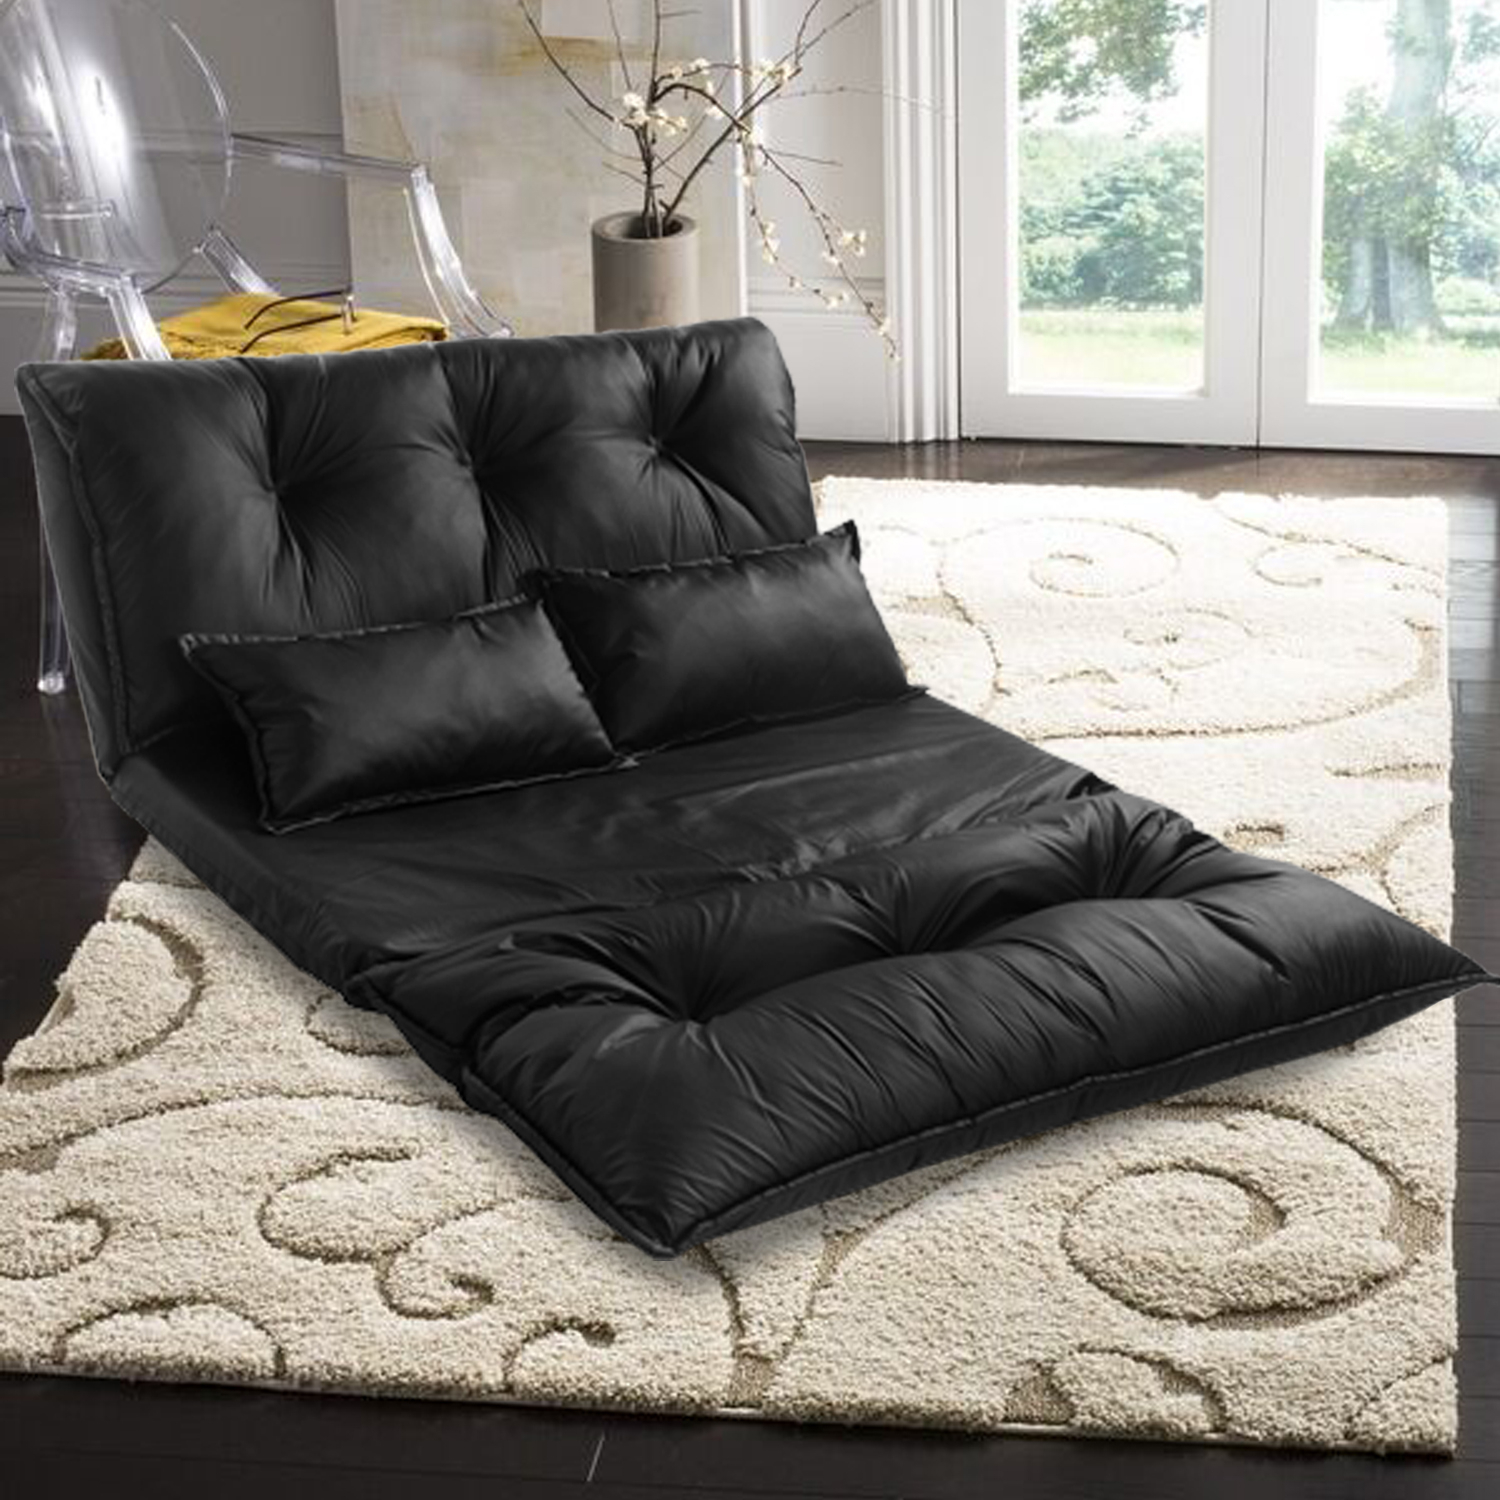 Pu Leather Sofa Bed For Bedroom, Futon Sofa Beds With 2 In Sofa Chairs For Bedroom (View 2 of 15)